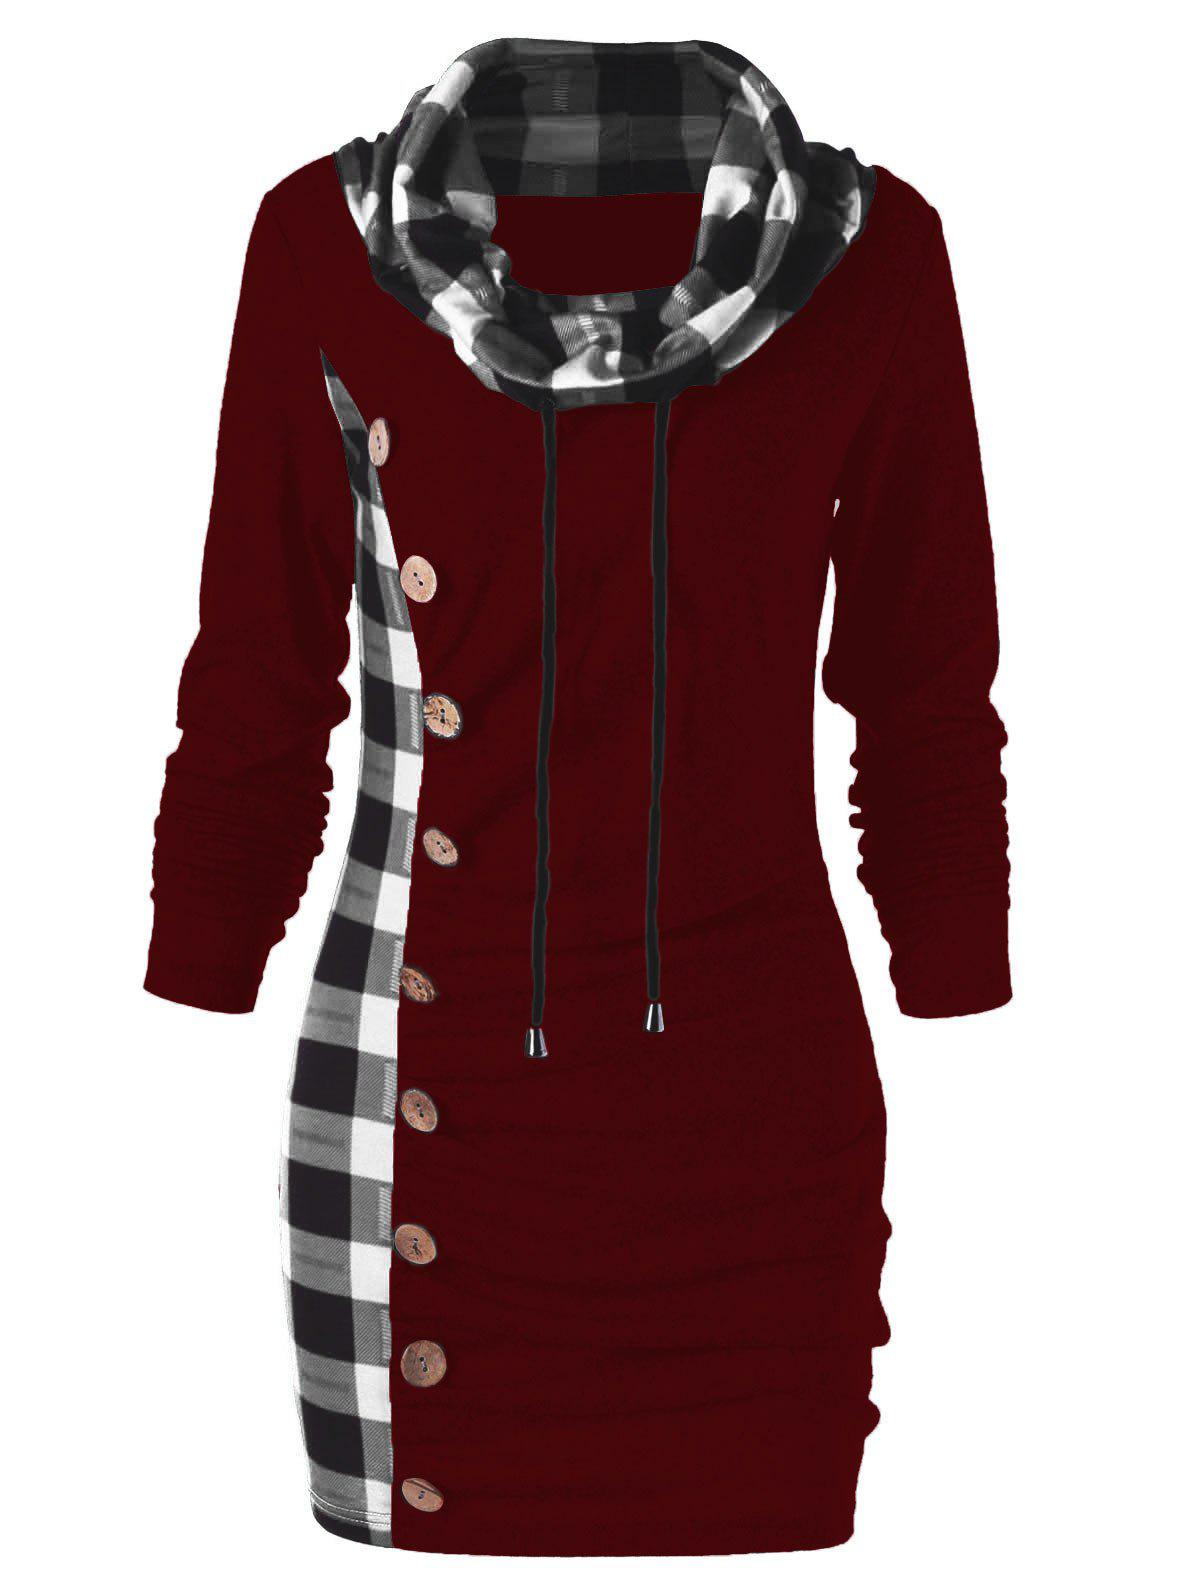 Buy Plaid Trim Cowl Neck Tunic Sweatshirt Dress